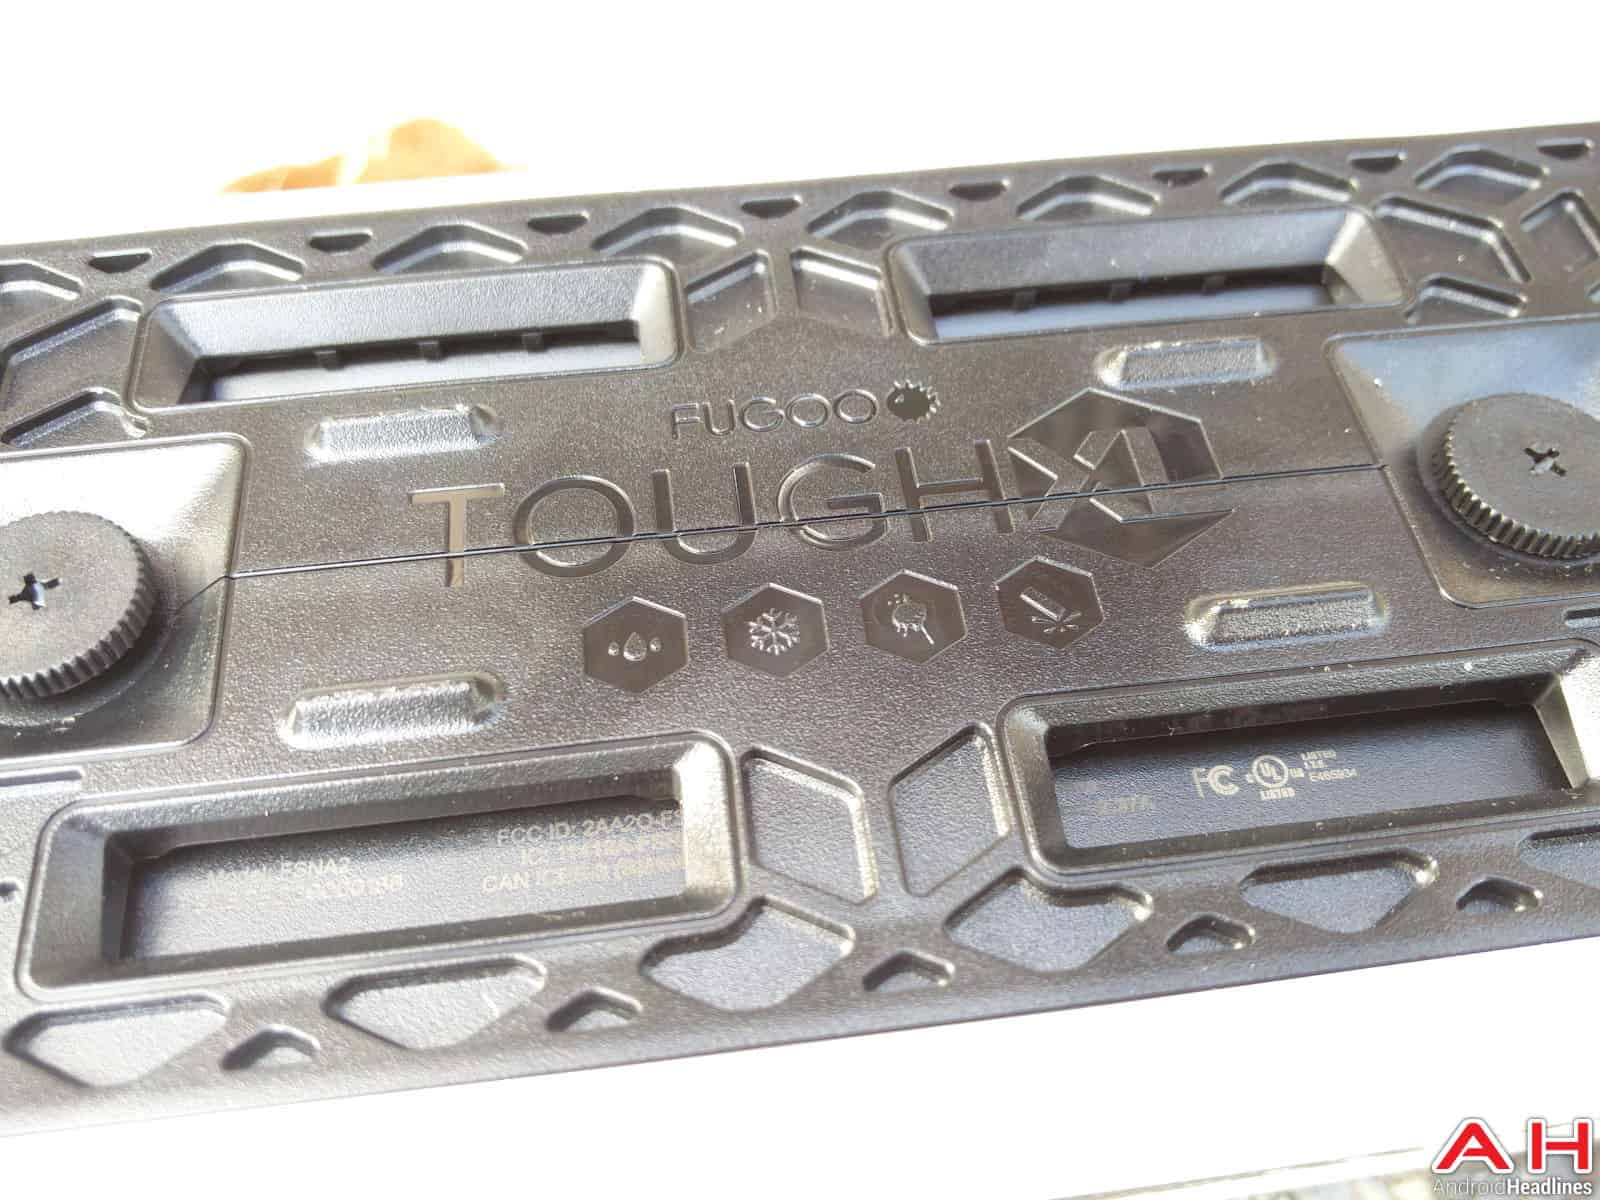 Fugoo Tough XL AH-28